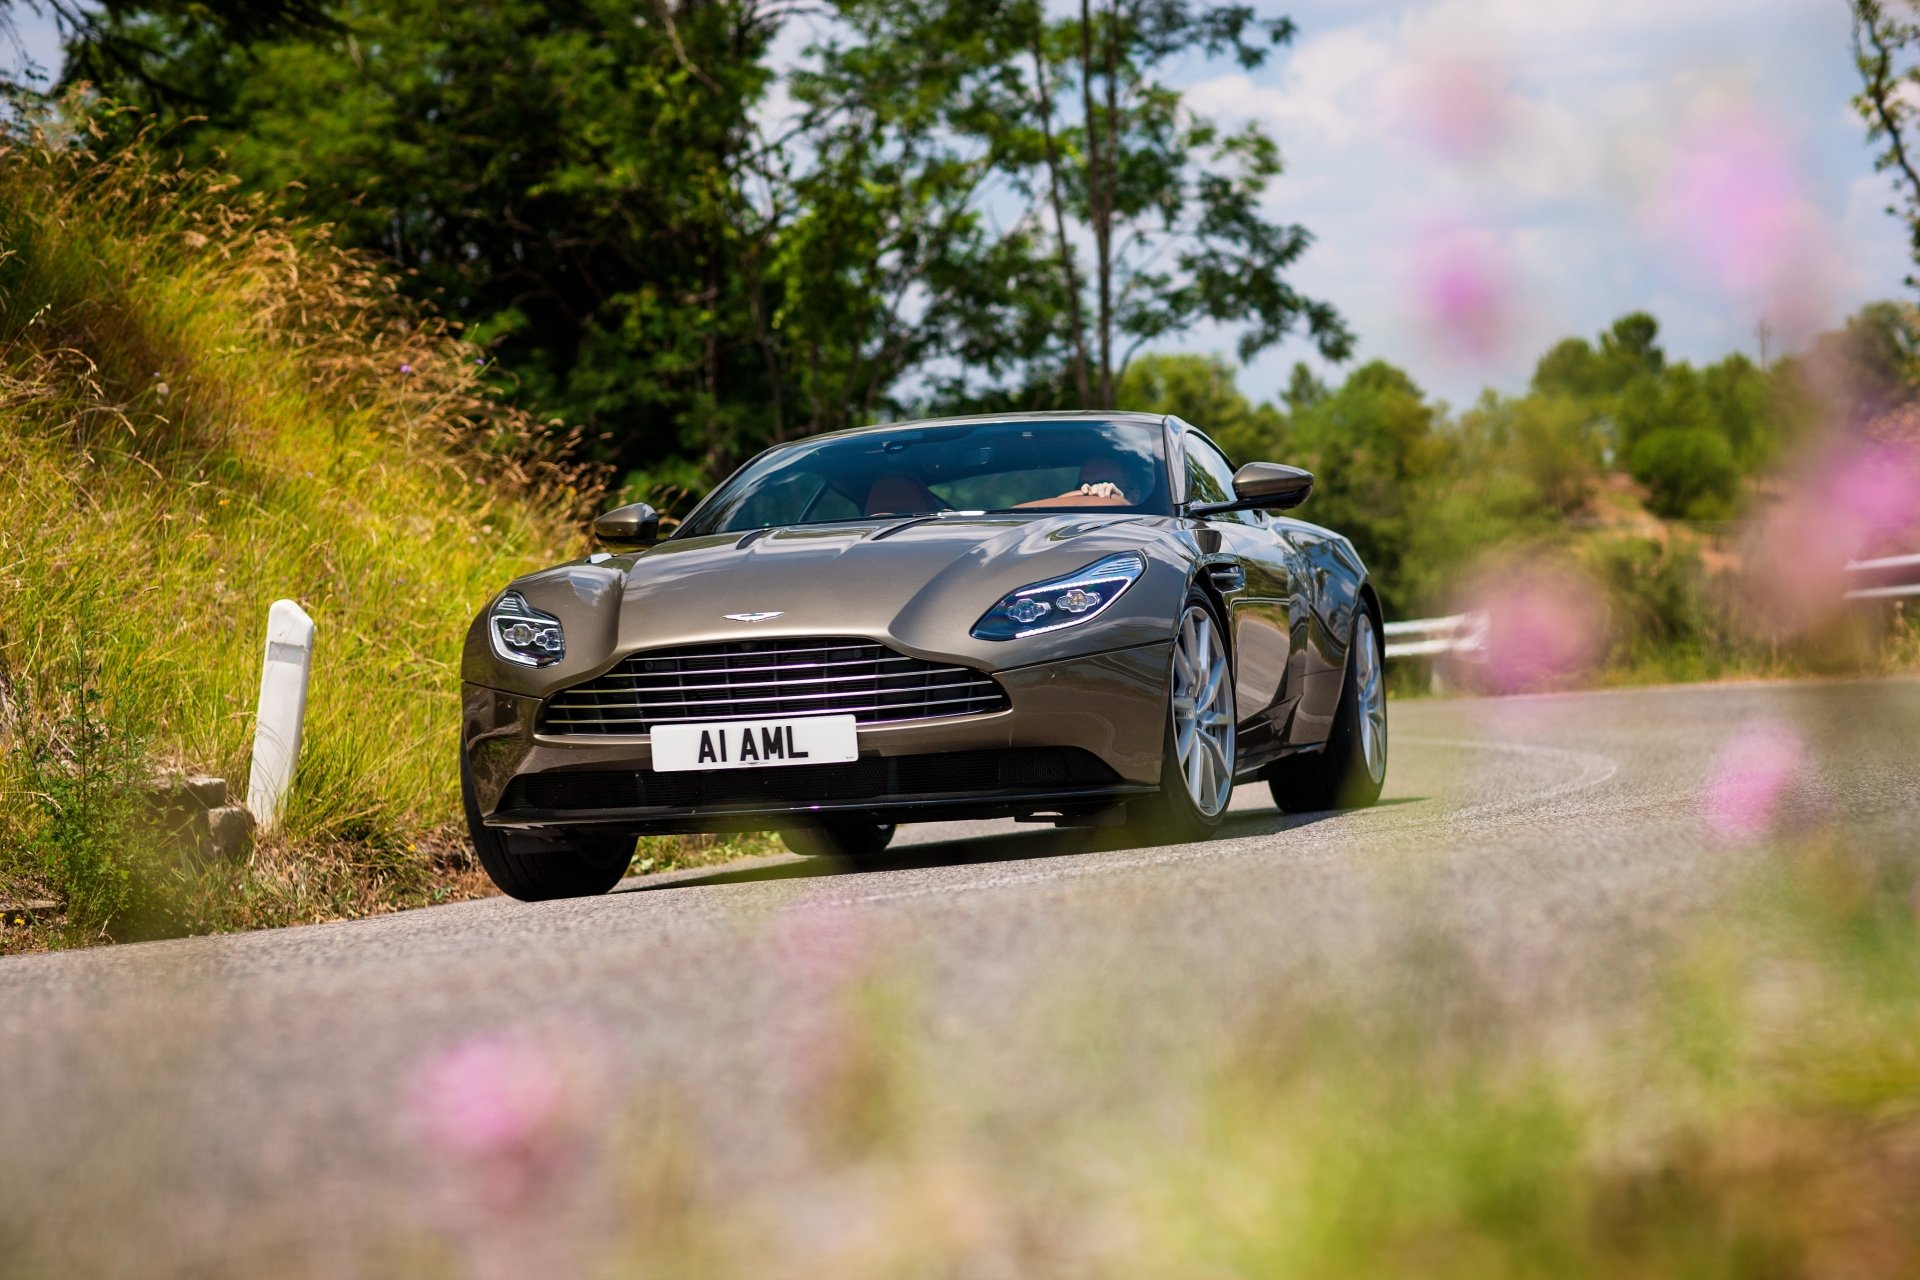 Vehicles - Aston Martin DB11  Aston Martin Car Vehicle Grand Tourer Wallpaper